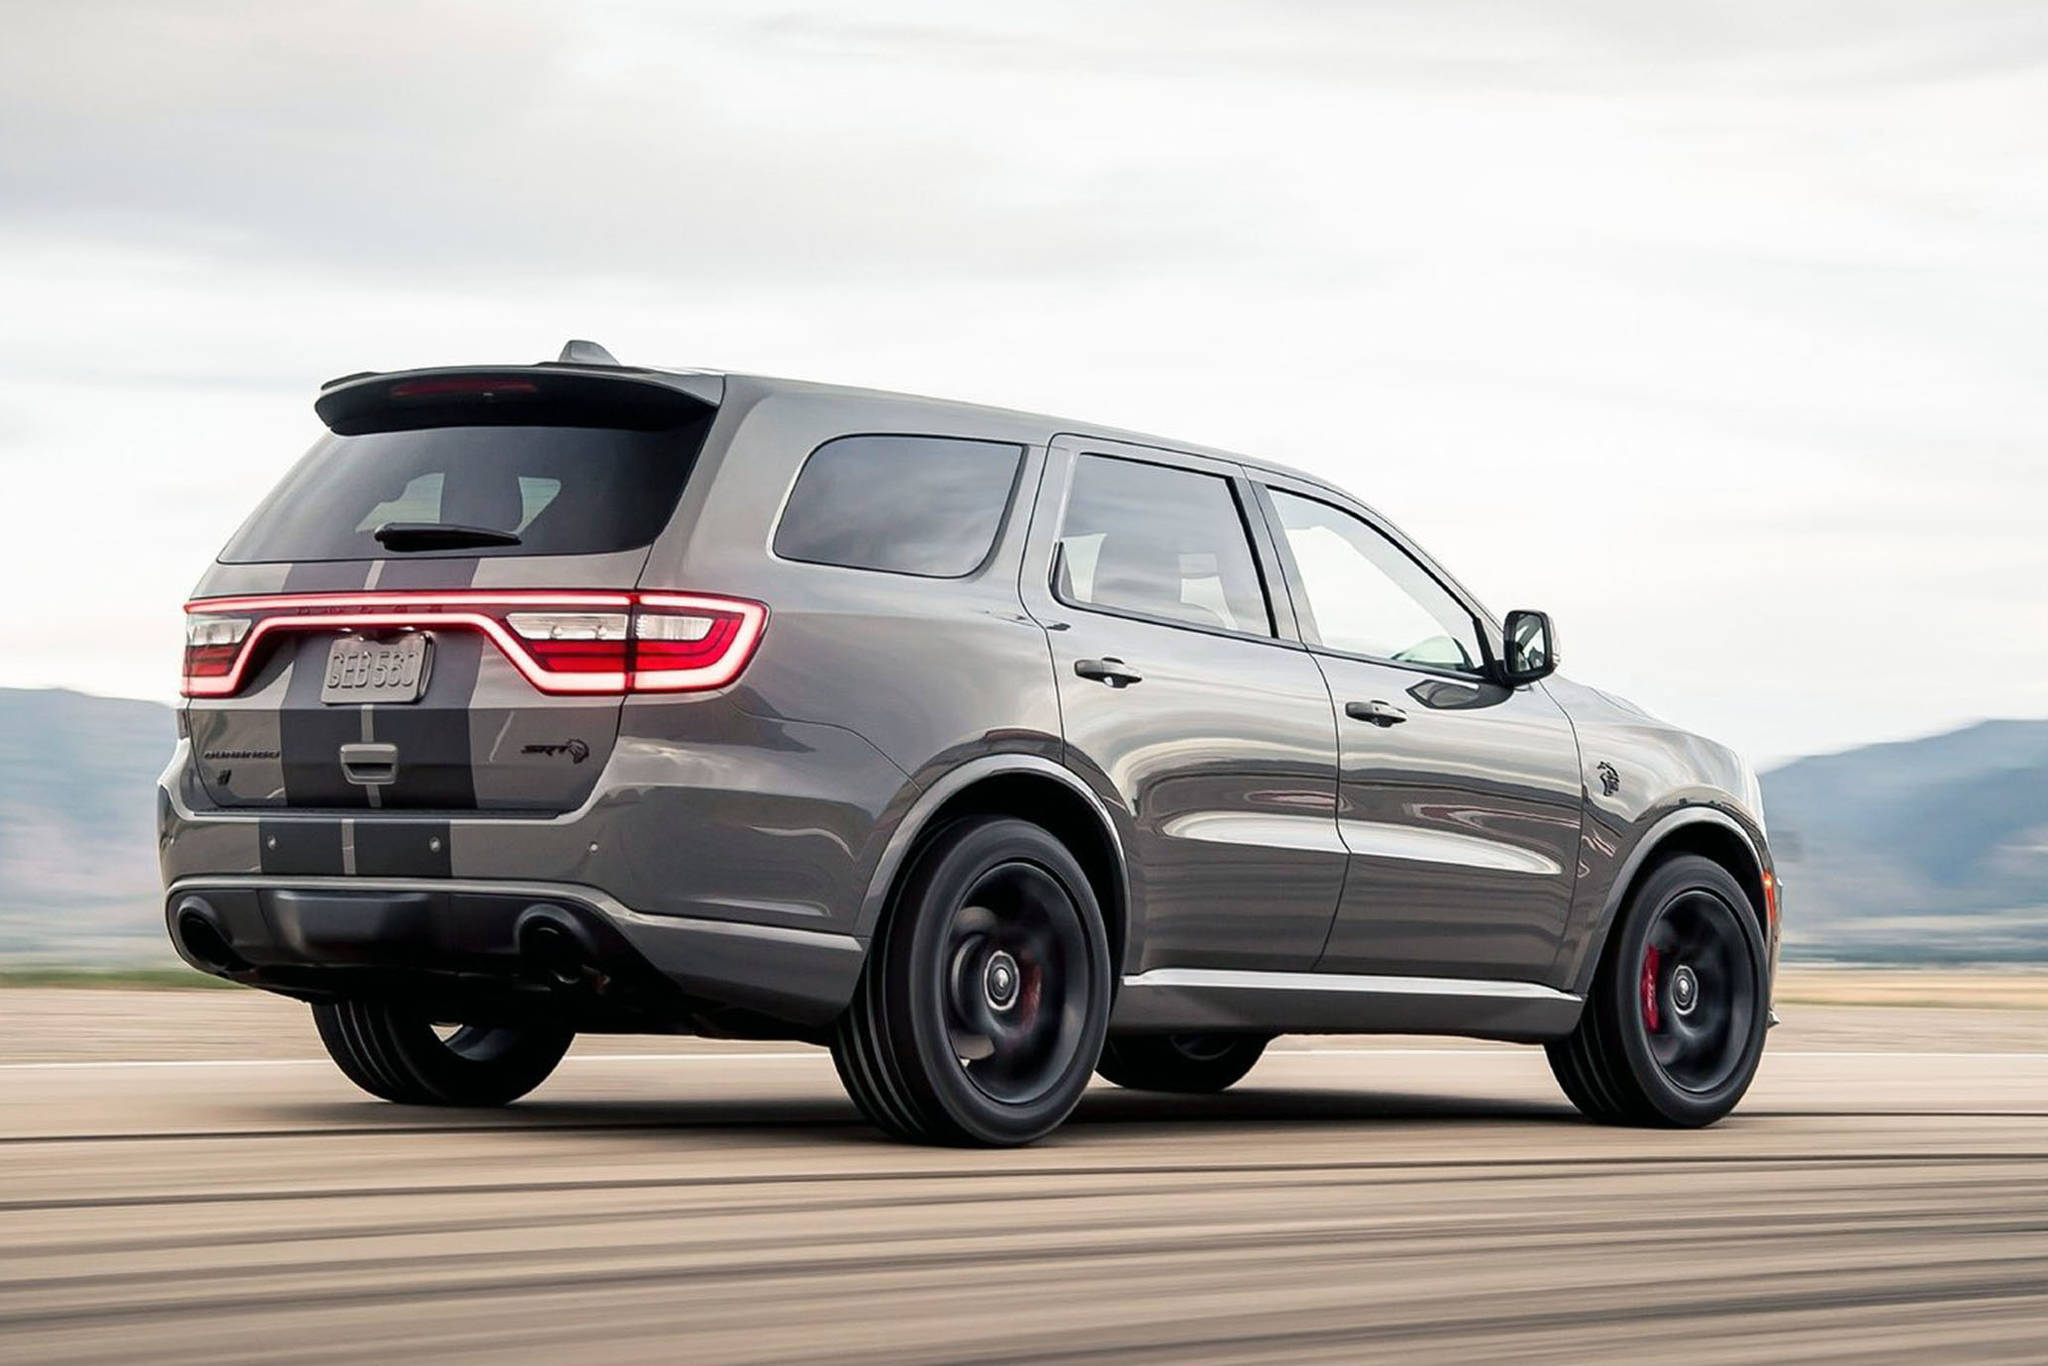 The current-generation Durango uses the Jeep Grand Cherokee platform and dates back to the 2011 model year, but since then has received regular updates both inside and out. PHOTO: DODGE